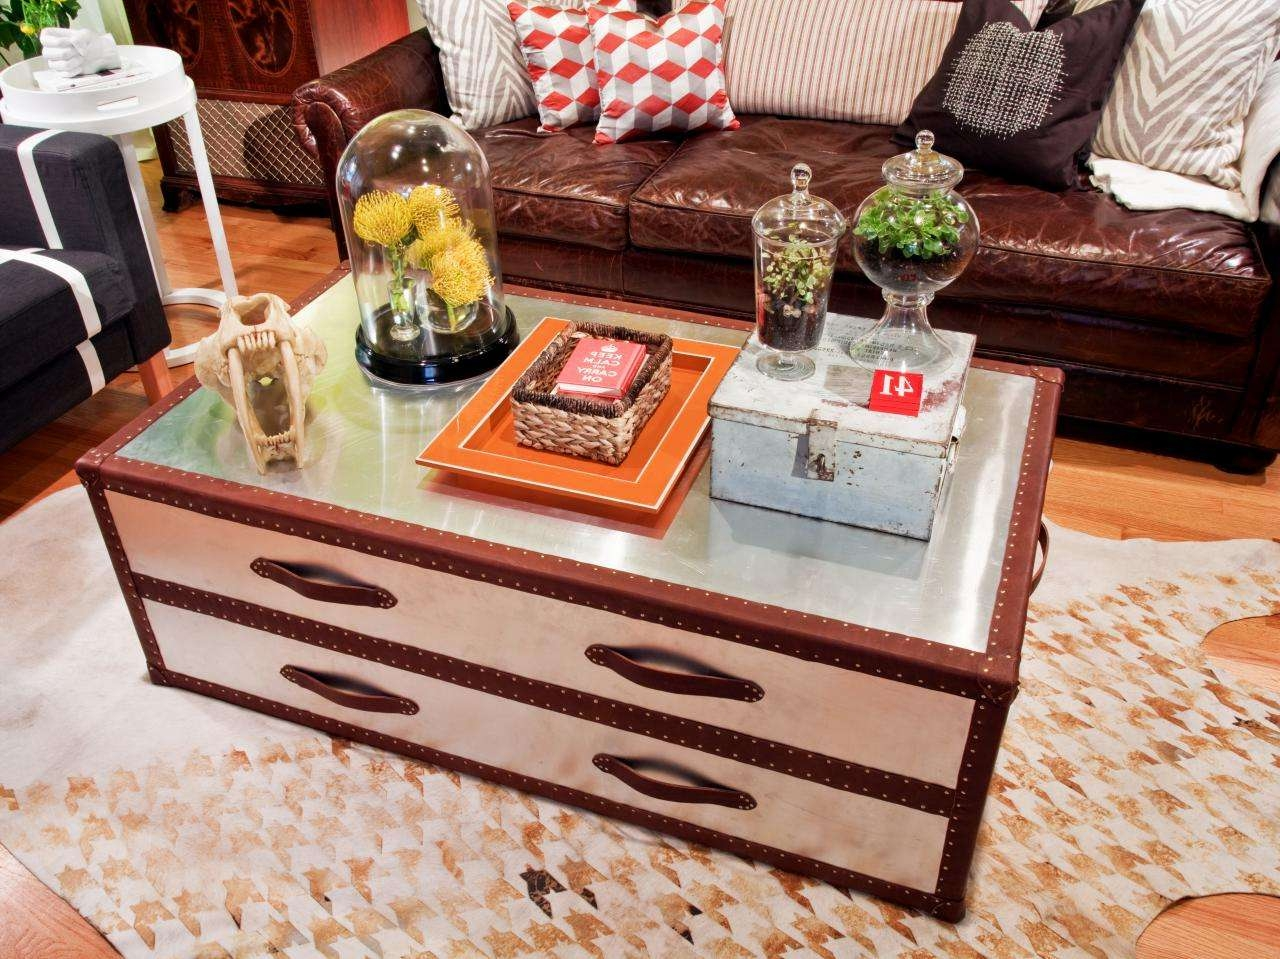 Trunk Coffee Tables In Wonderful Looks! — Home Design Ideas Intended For Fashionable Steamer Trunk Stainless Steel Coffee Tables (View 15 of 20)